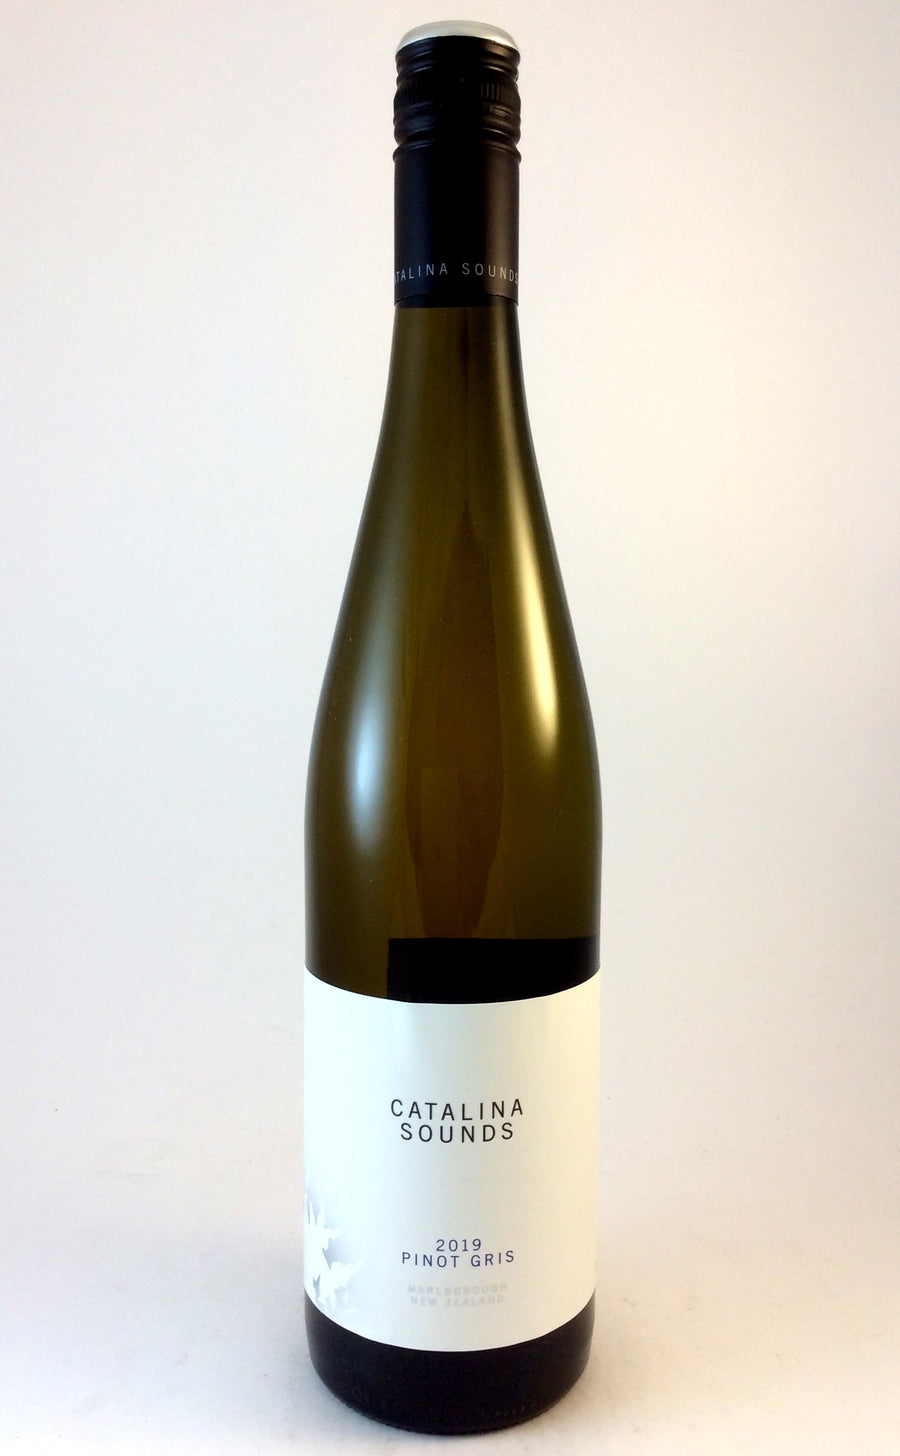 Catalina Sounds Pinot Gris